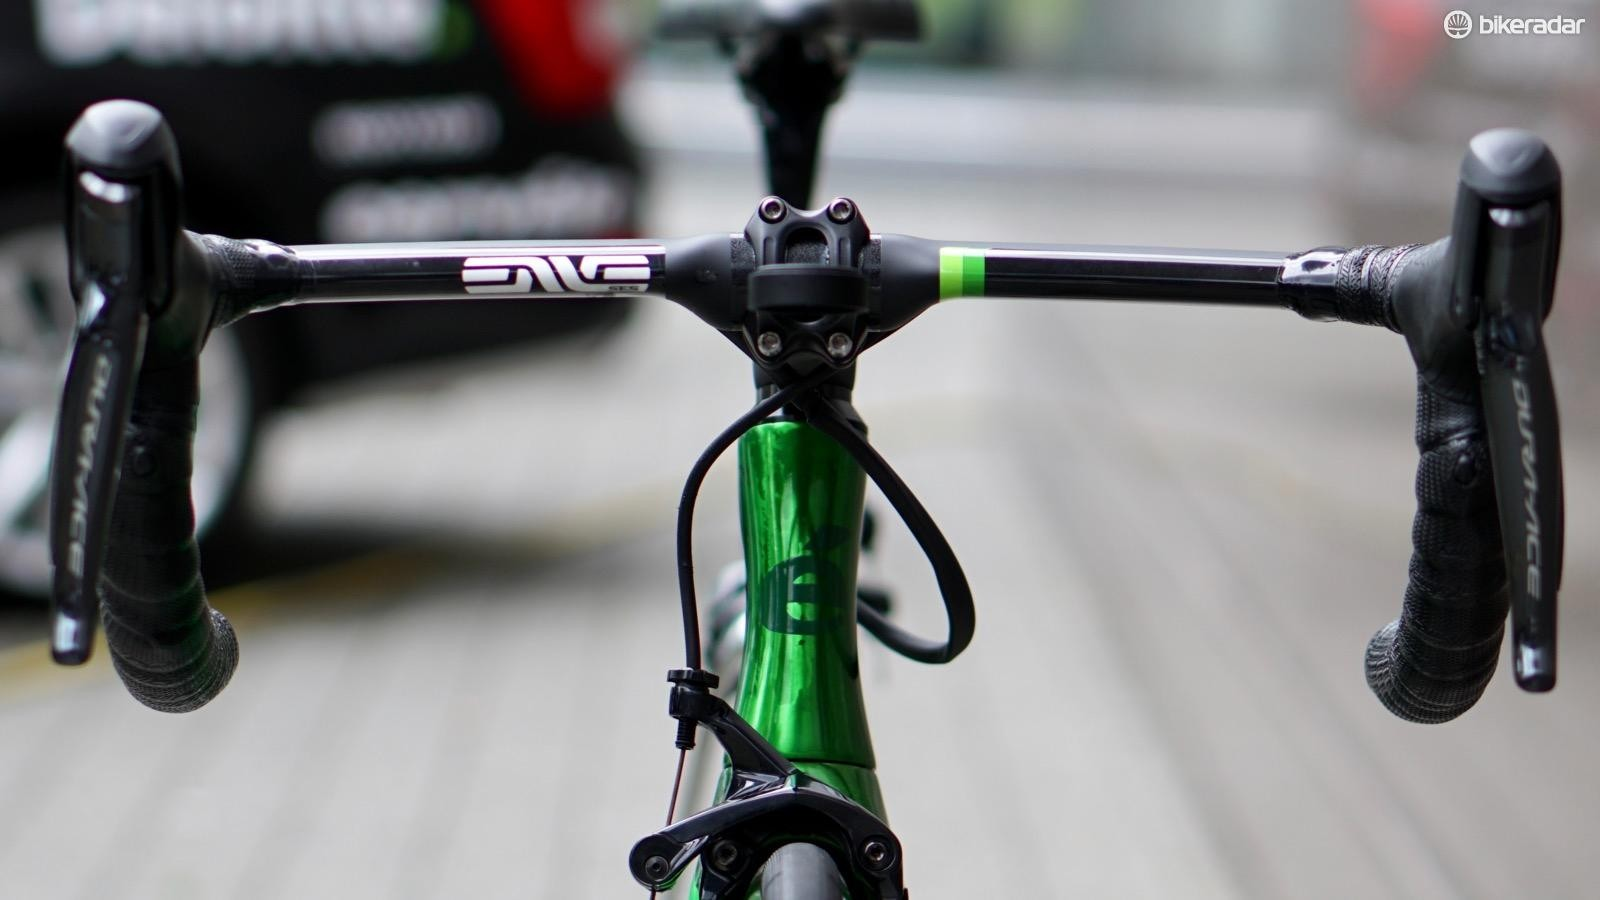 ENVE's standard aero bar features drops that angle inwards towards the center of the bike. Cavendish asked for standard drops, and got them